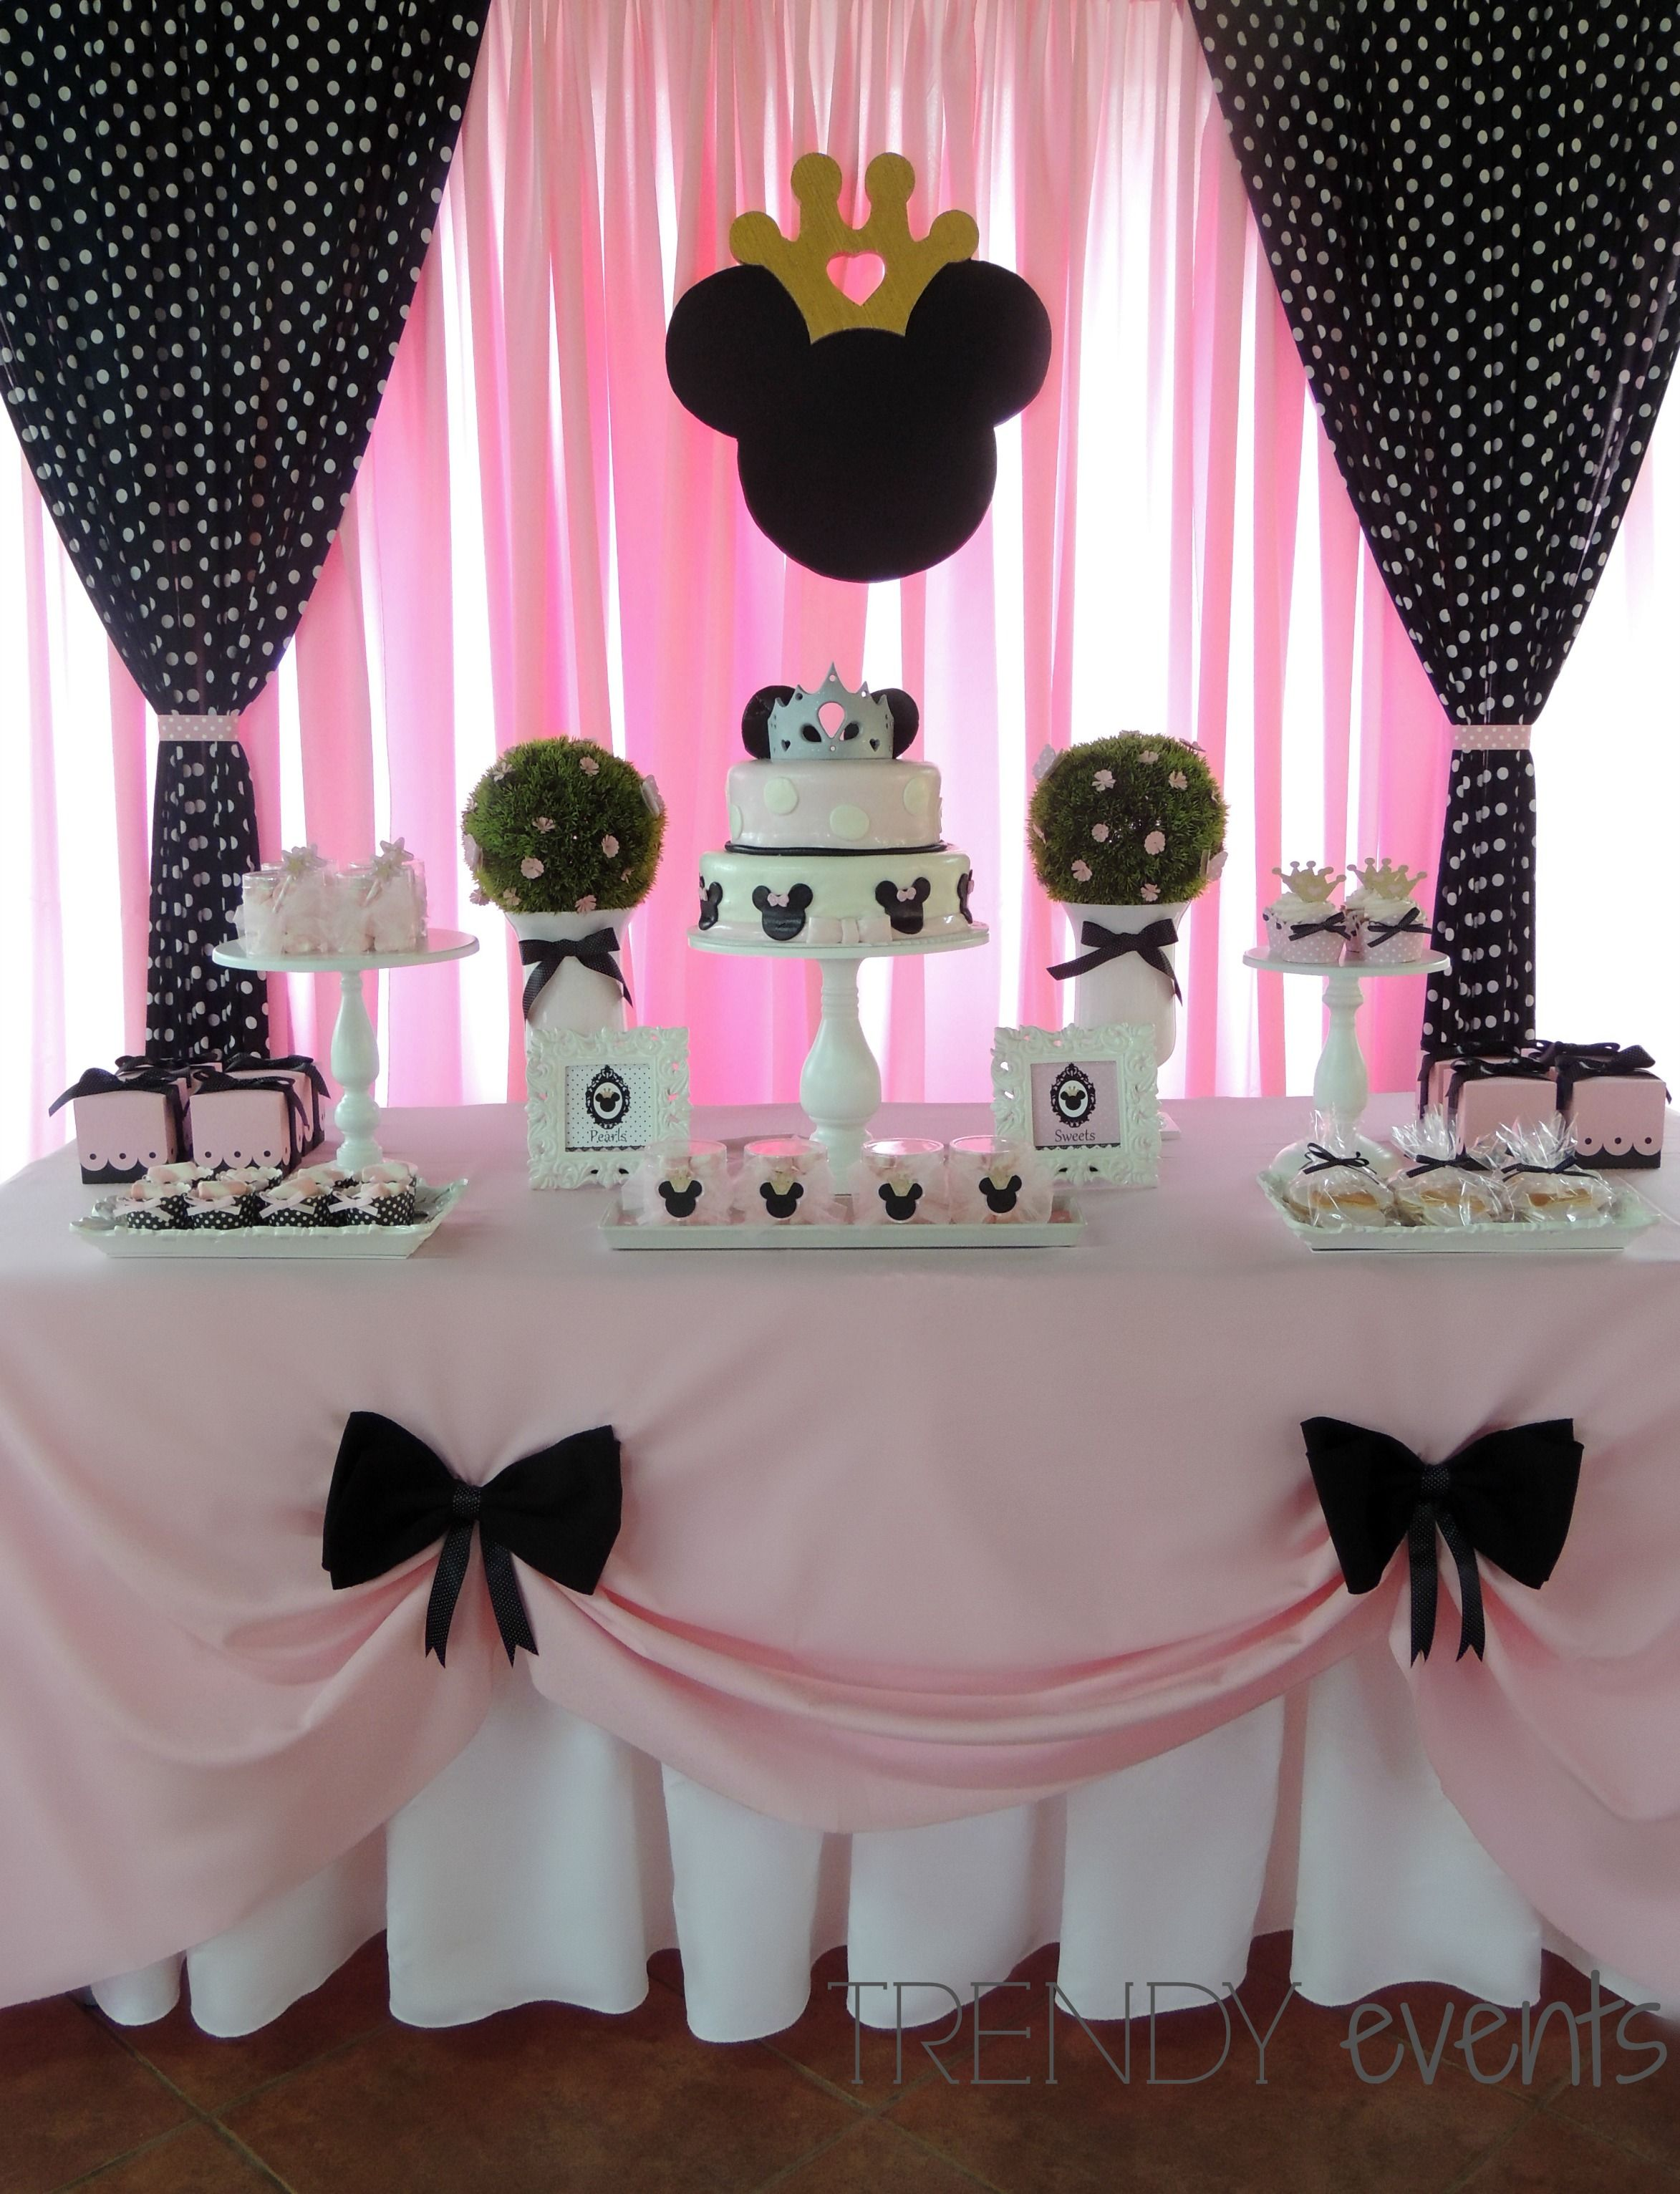 mickey mouse clubhouse table and chair set good reading chairs minnie princess party ideas by trendy events www.facebook.com/trendyeventspr | ...